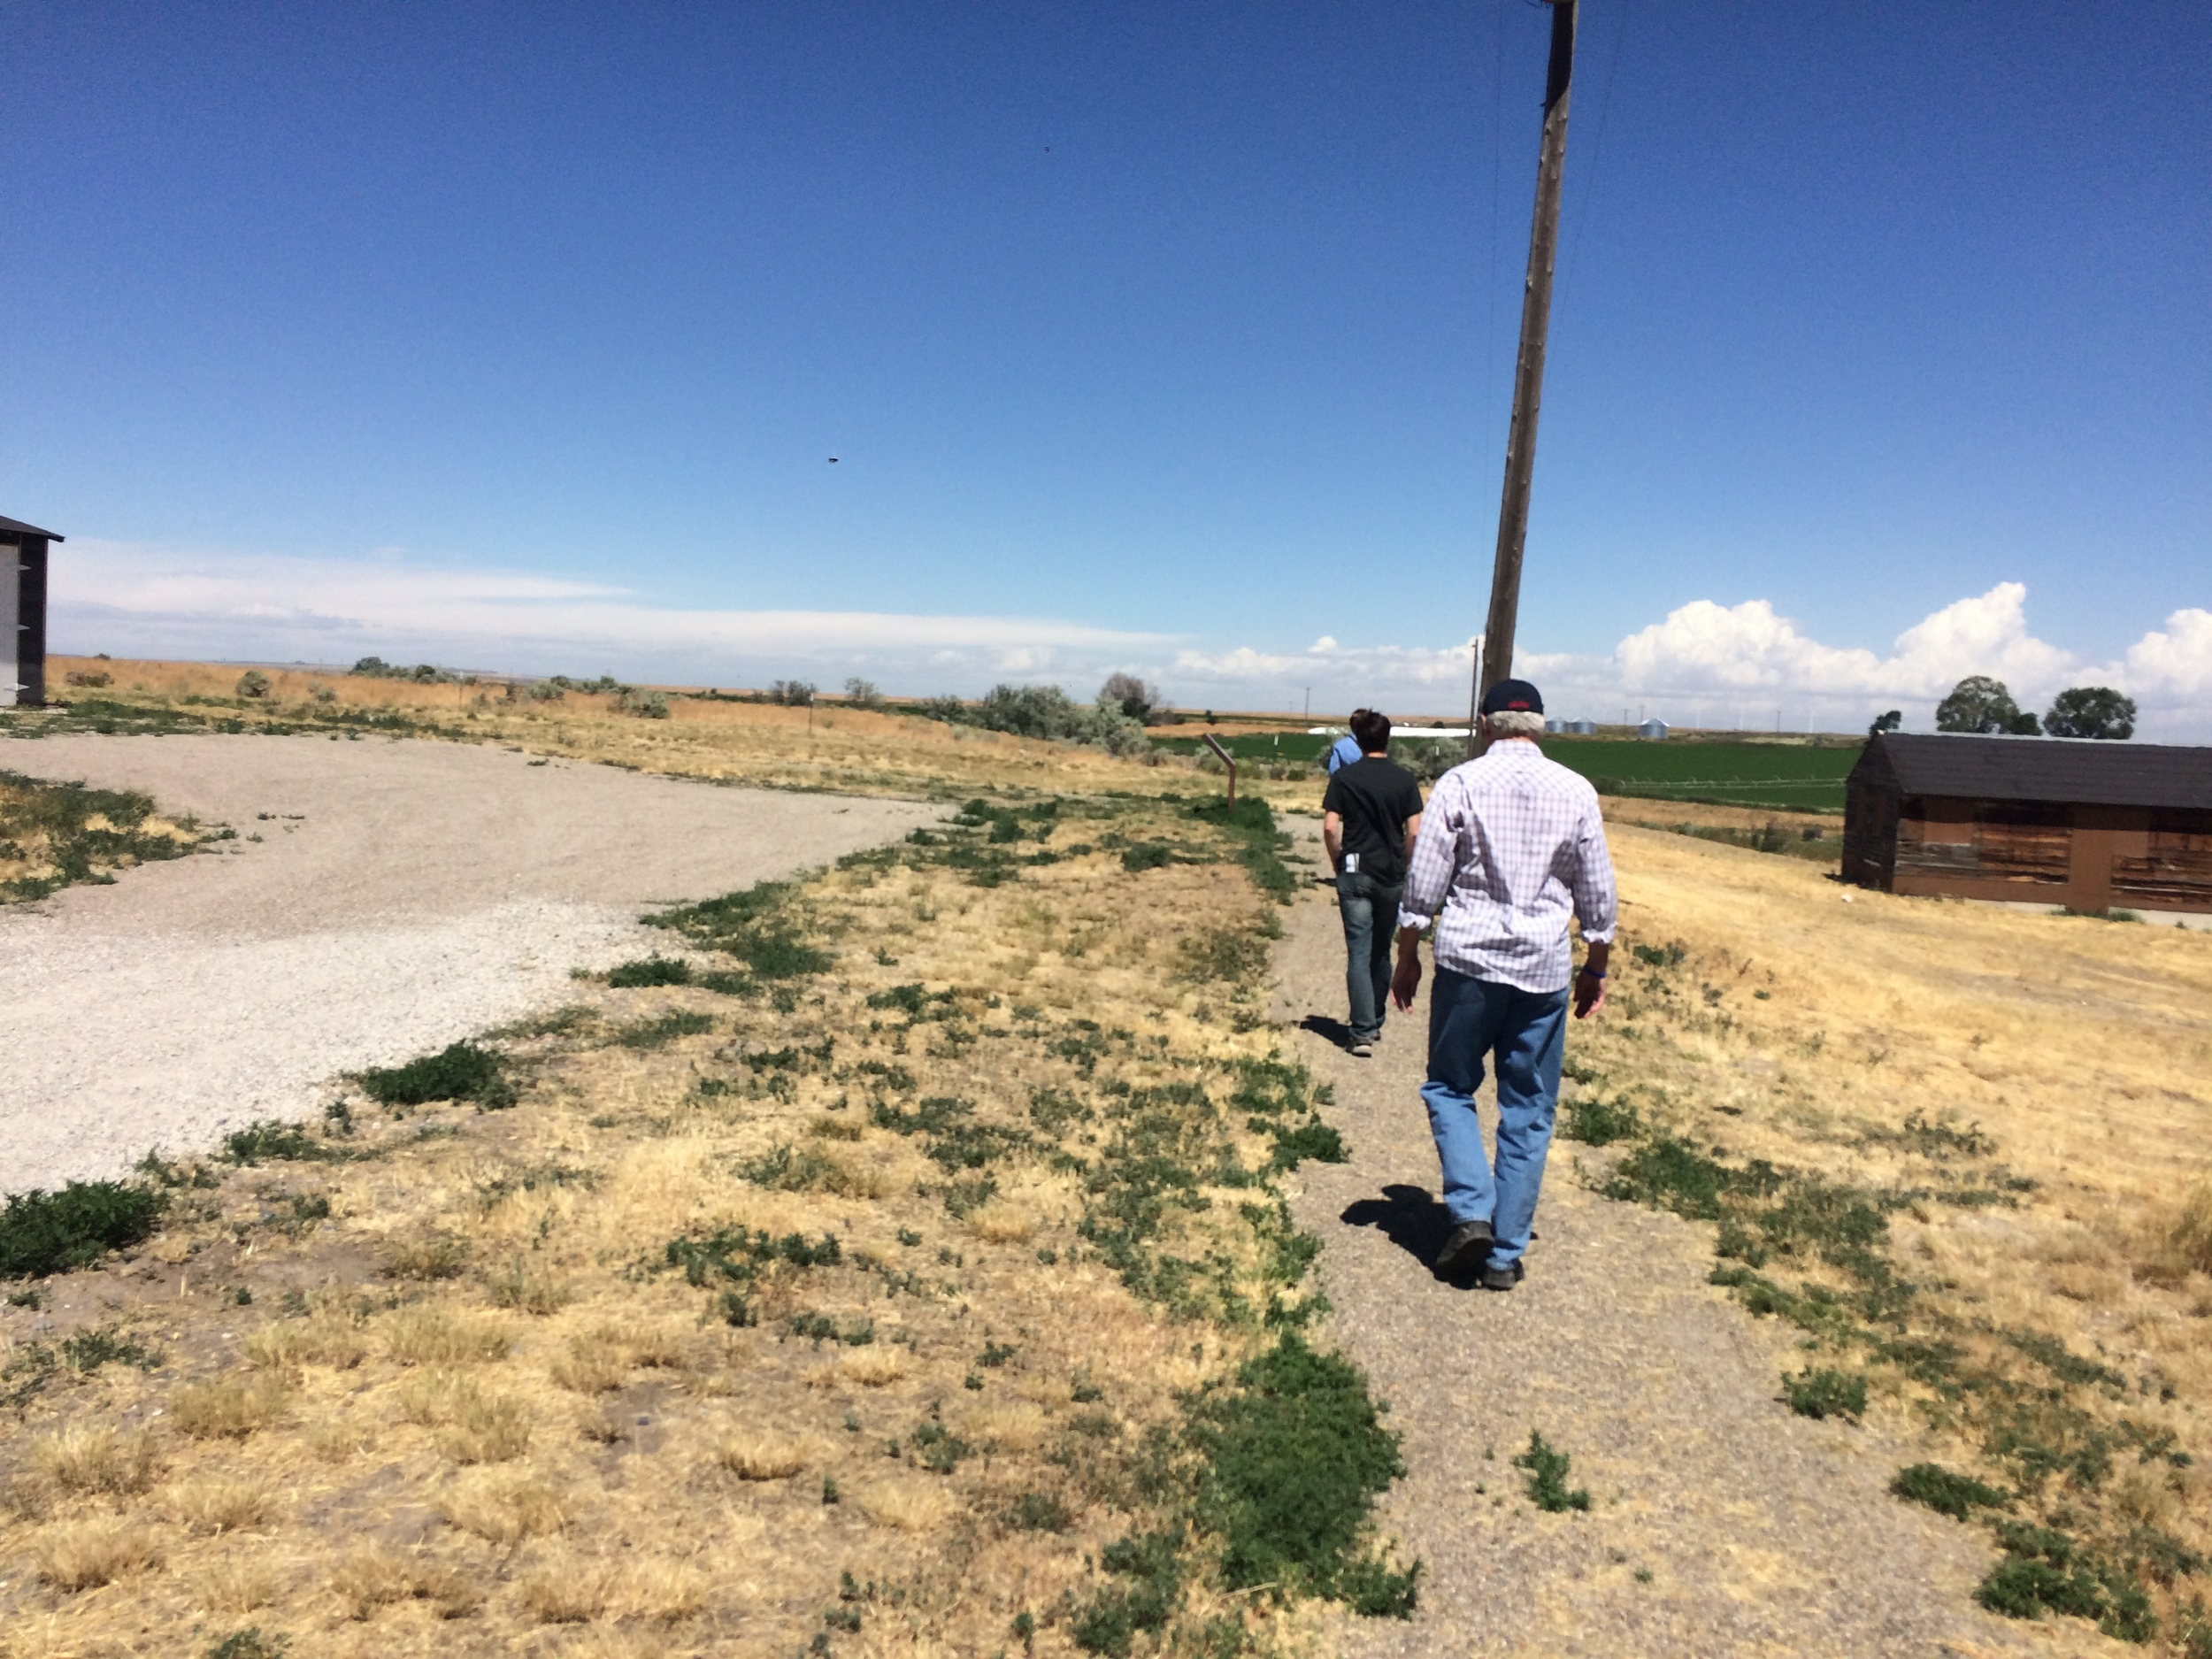 Minidoka internment camp. Imagine being relocated here from the lush PNW!